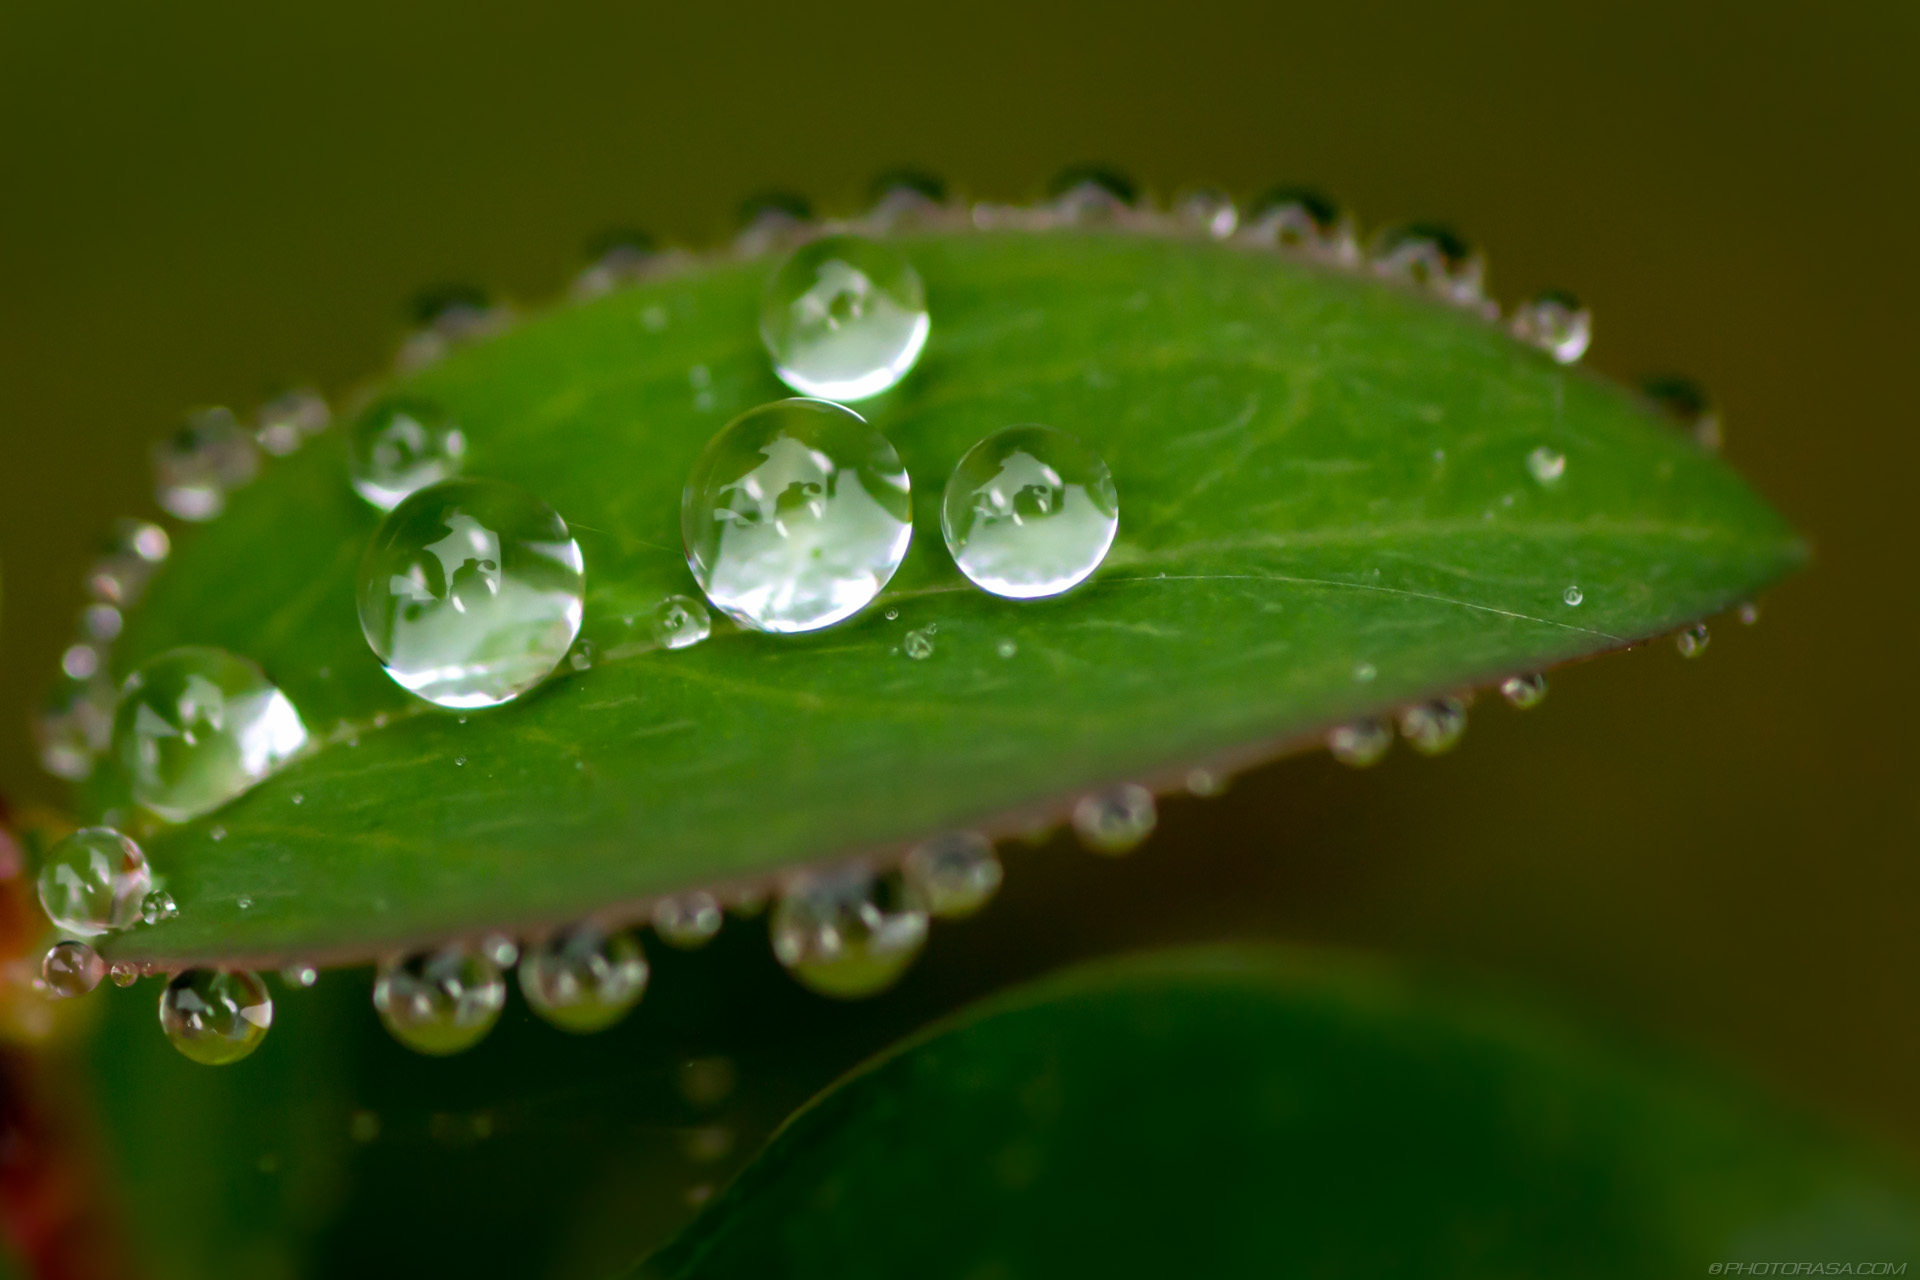 http://photorasa.com/dewdrops-tiny-leaves/round-blobs-of-water-on-tiny-leaf/